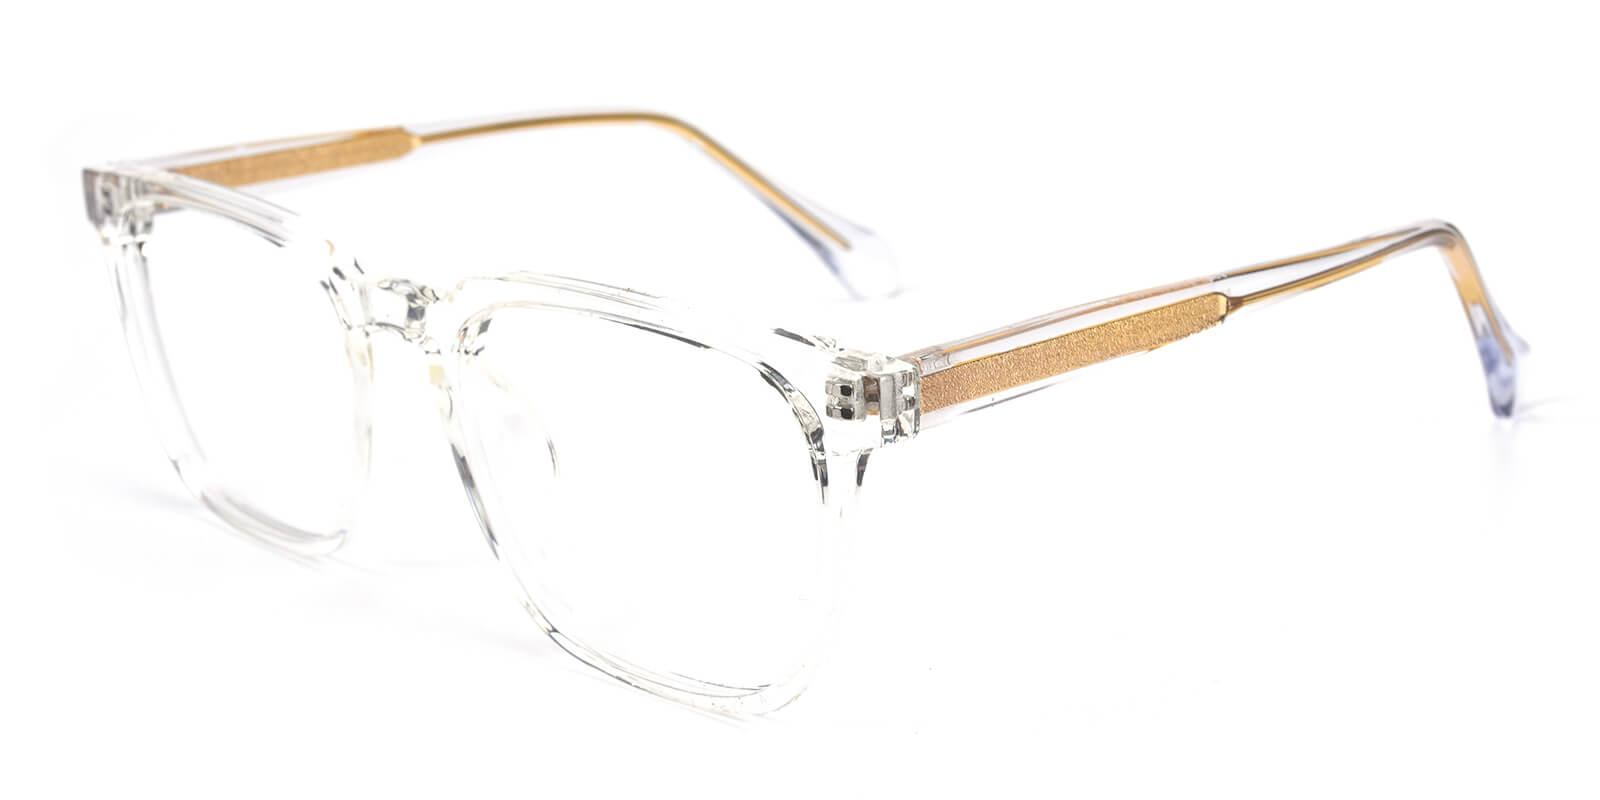 Gekay-Translucent-Square-Acetate-Eyeglasses-additional1